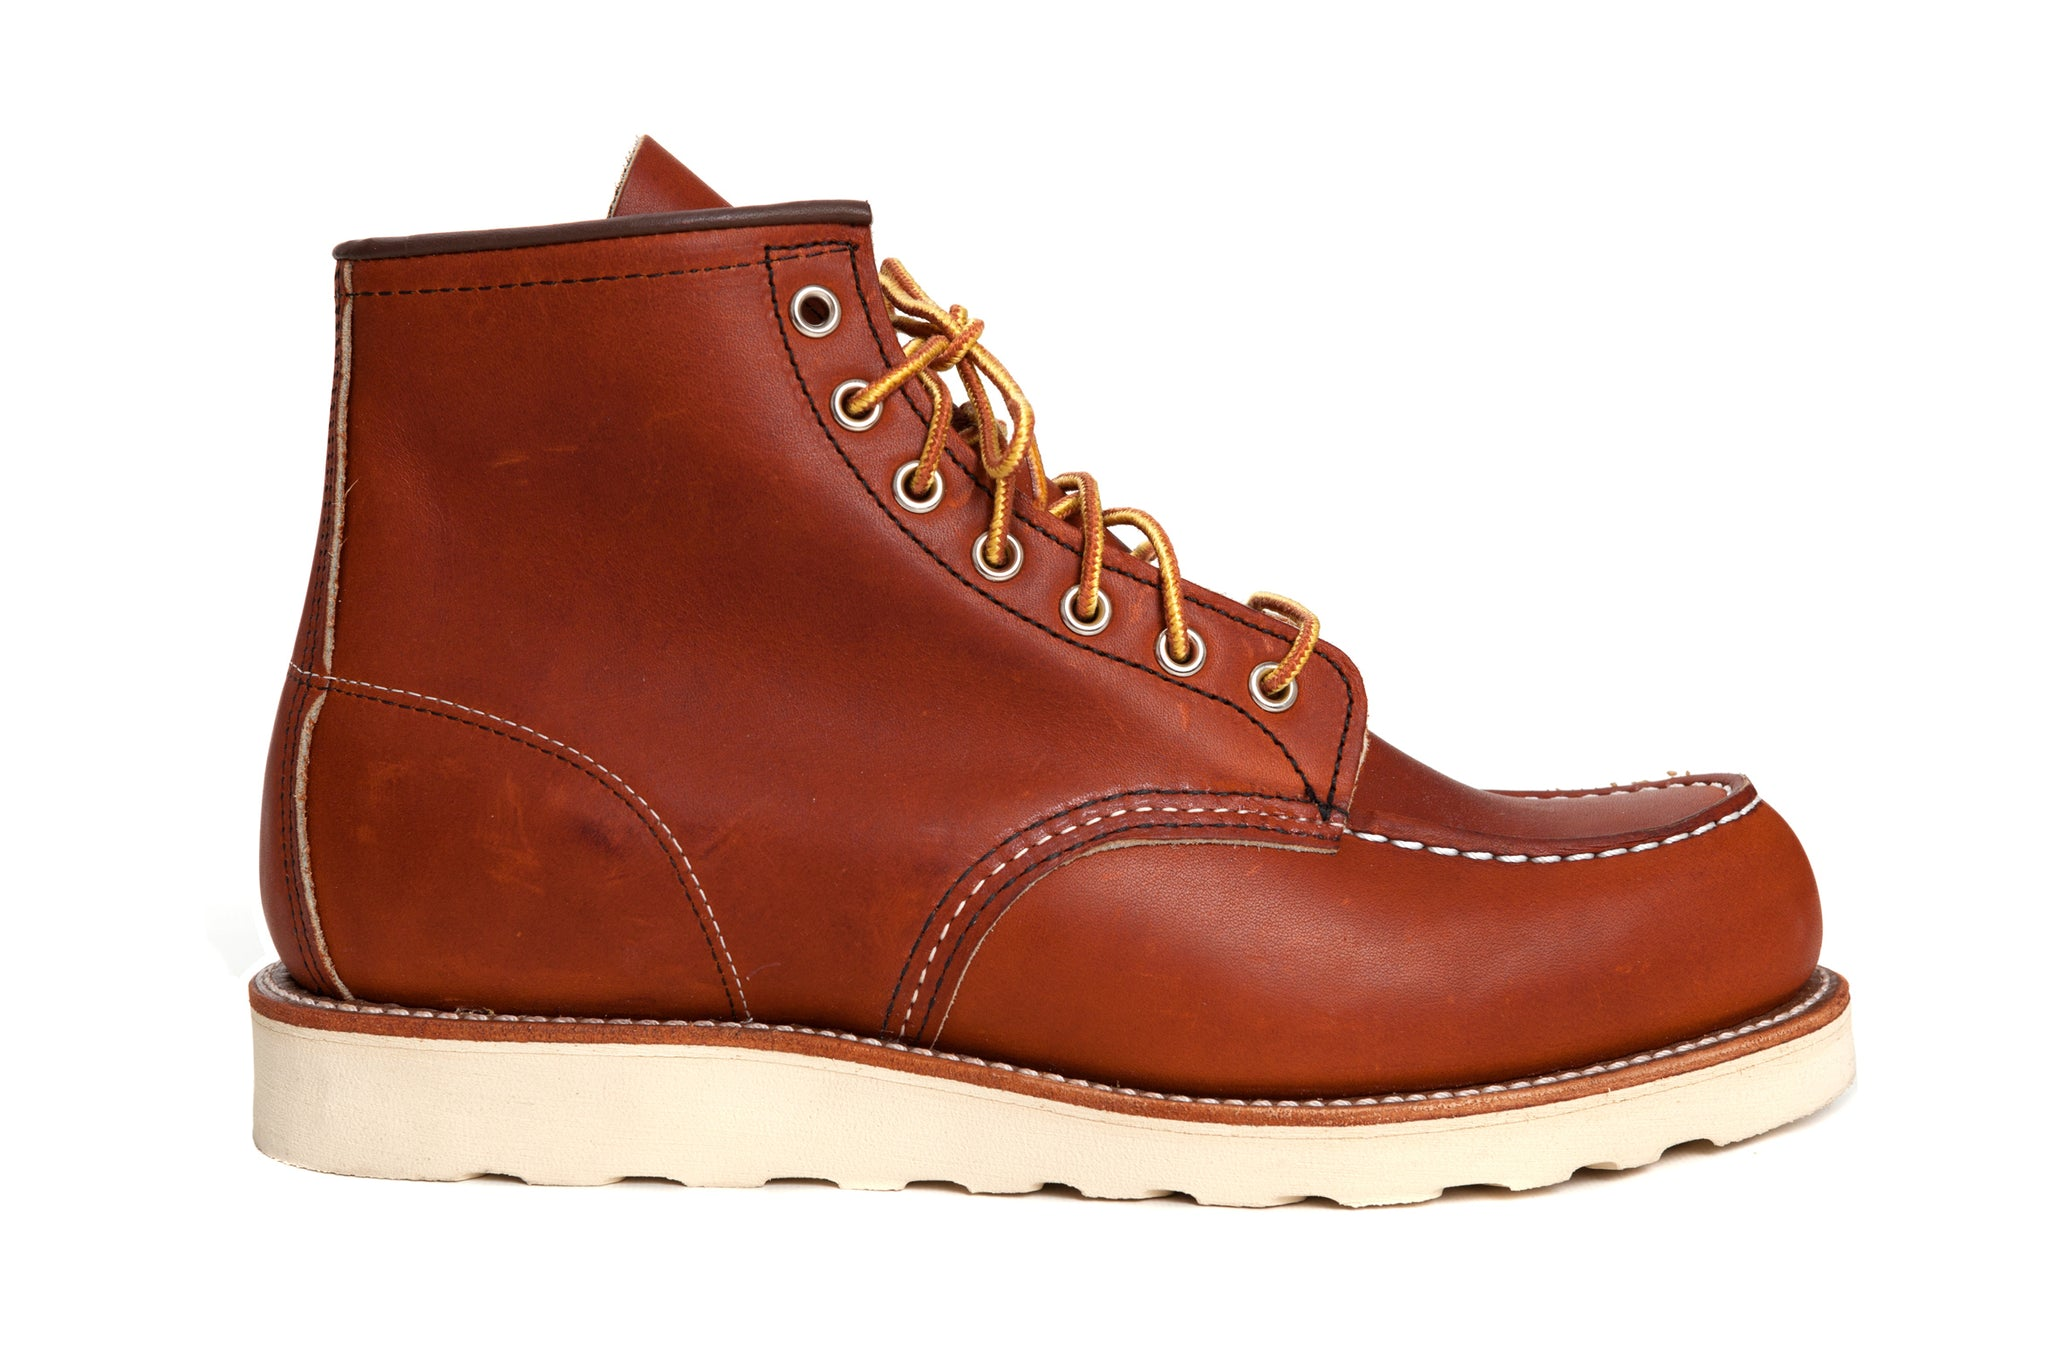 Red Wing Shoes - Classic Moc Toe - 875 - Oro Legacy - last 23 - Regent Tailoring